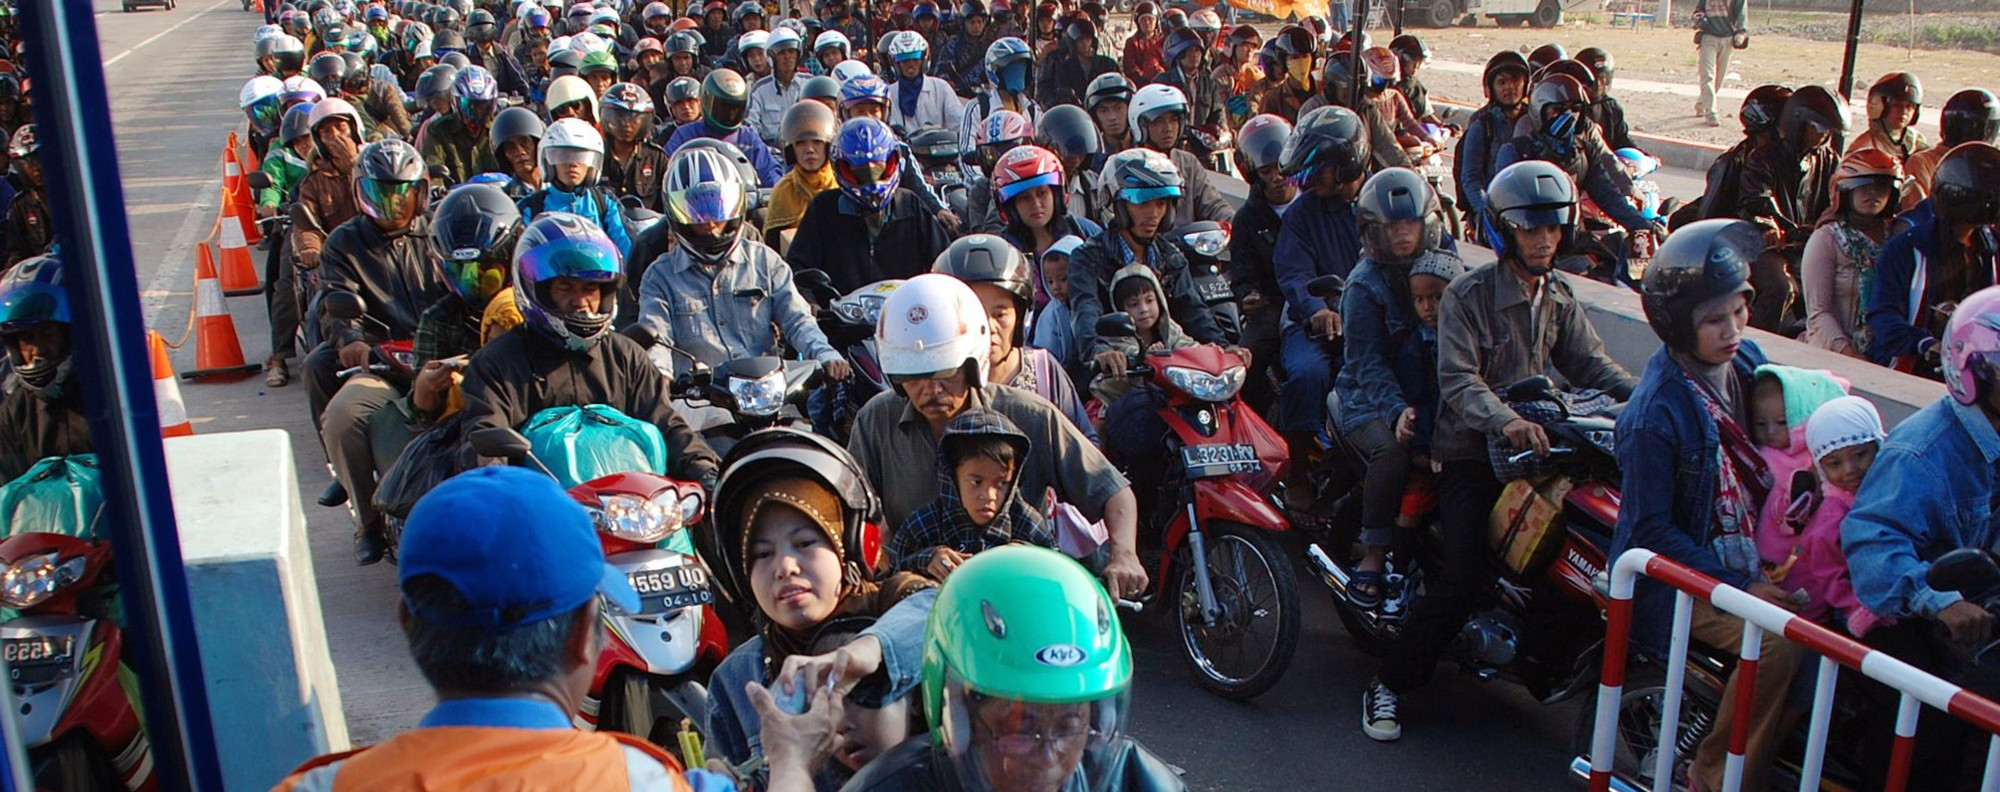 Motorists queue at a toll gate in Surabaya, Indonesia. Photo: AFP